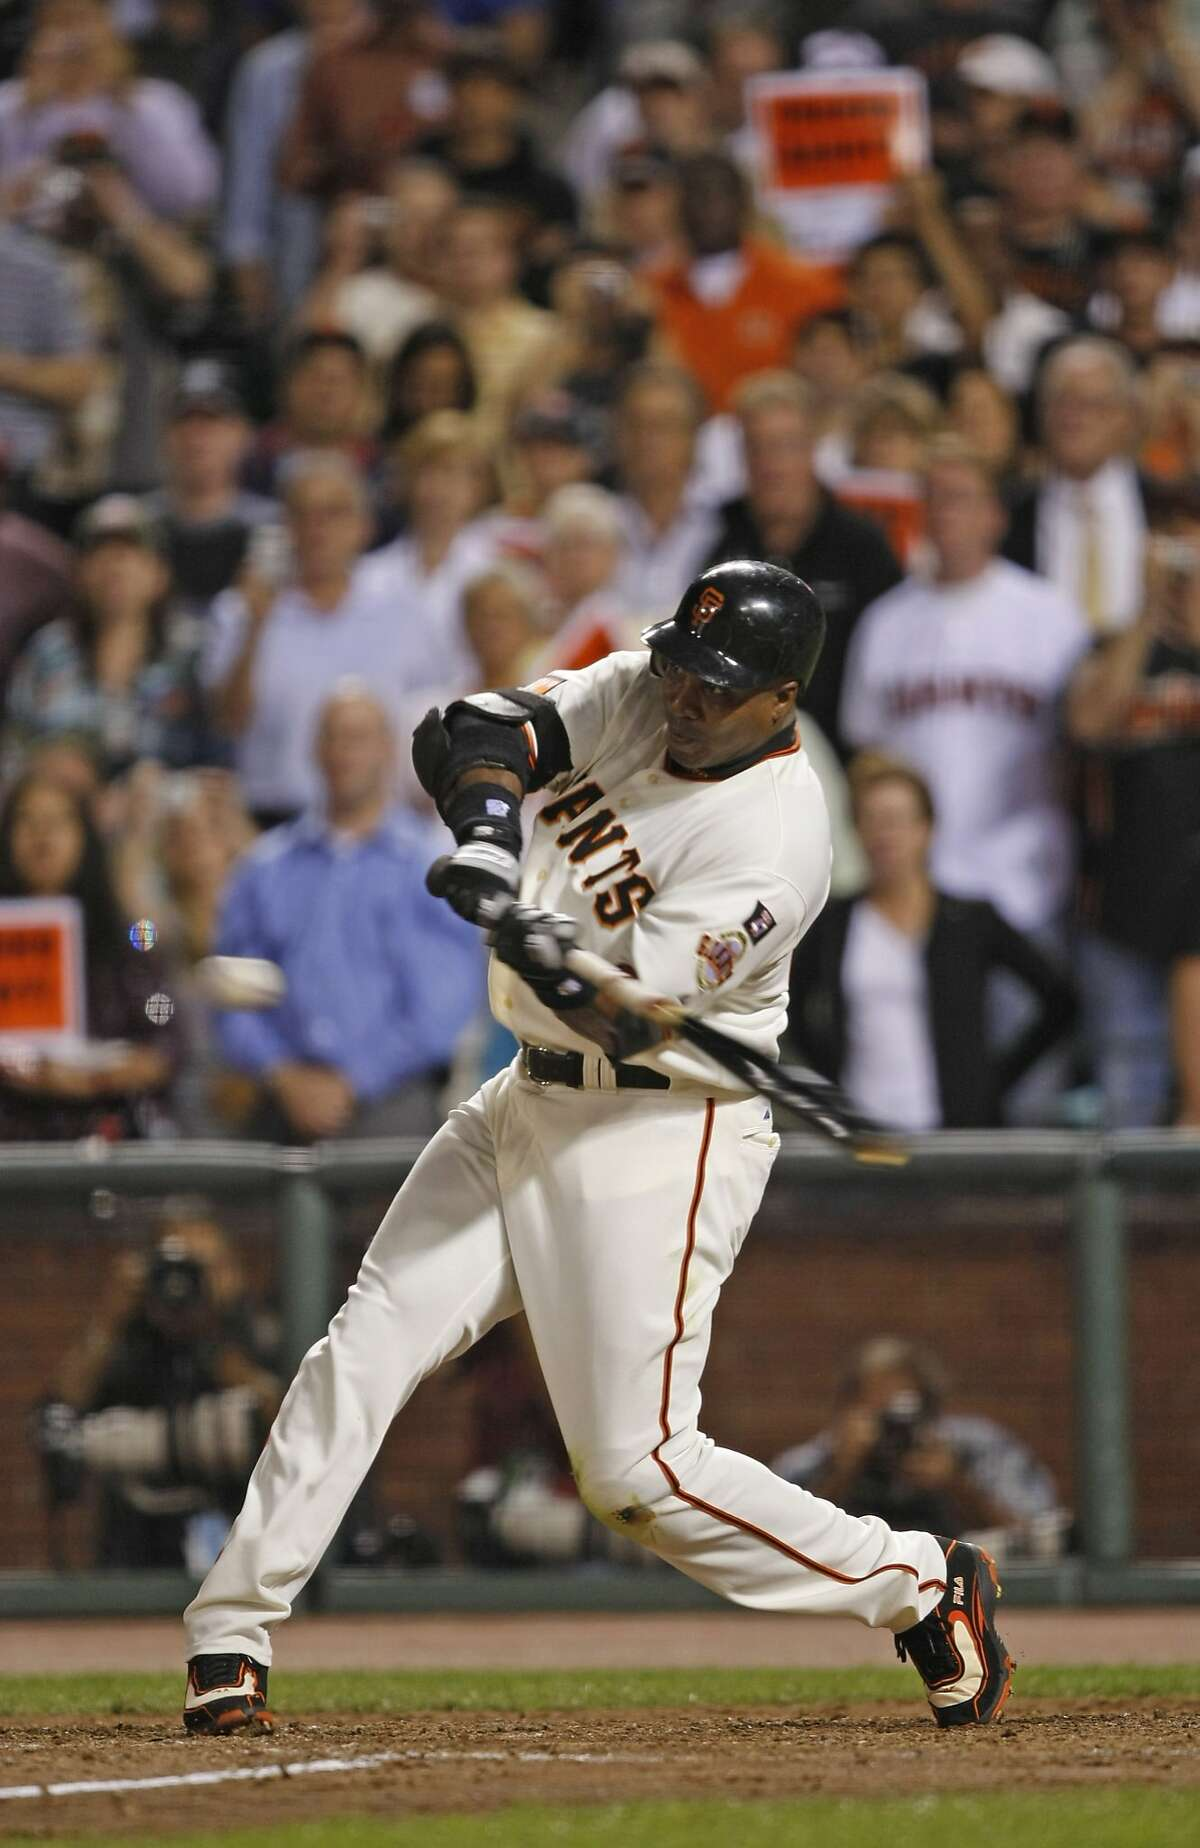 Barry Bonds takes his final at bat - a pop out - and then leaves the field for the last time in the 6th inning as he plays his final game at AT&T Park as a San Francisco Giant in game against San Diego Padres. Photographed in San Francisco on 9/26/07. Deanne Fitzmaurice / The Chronicle